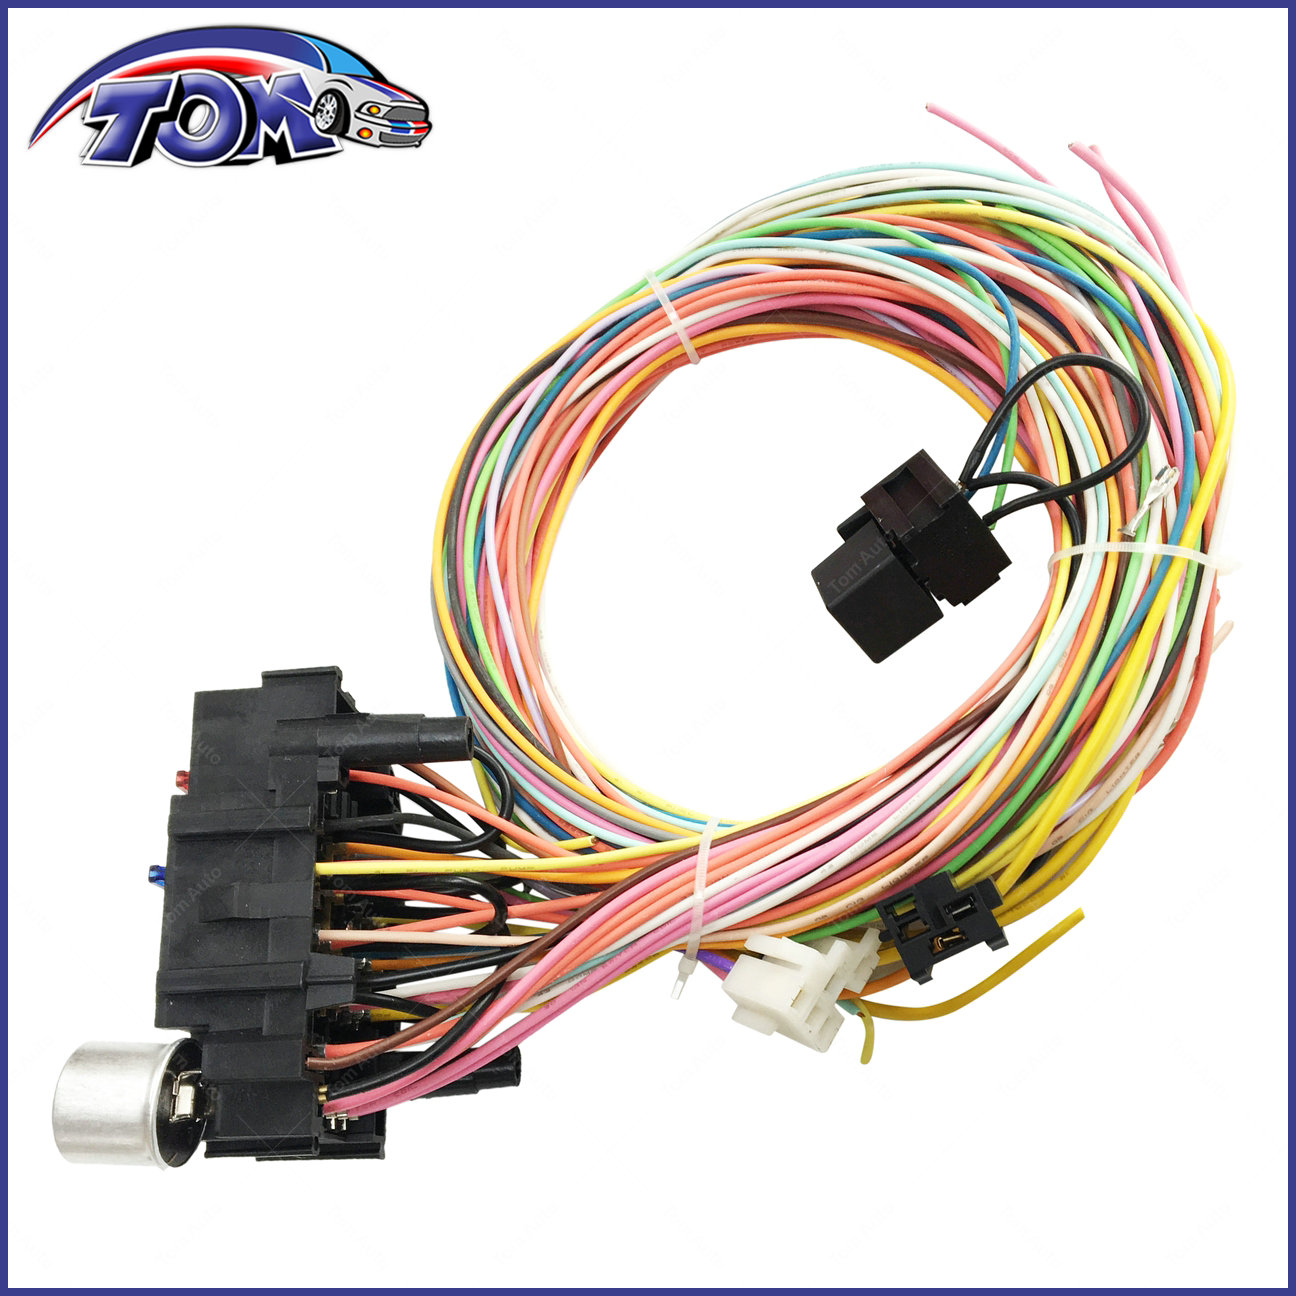 21 Circuit Wiring Harness Chevy Mopar Ford Hotrods Universal Extra Connectors Long Wires